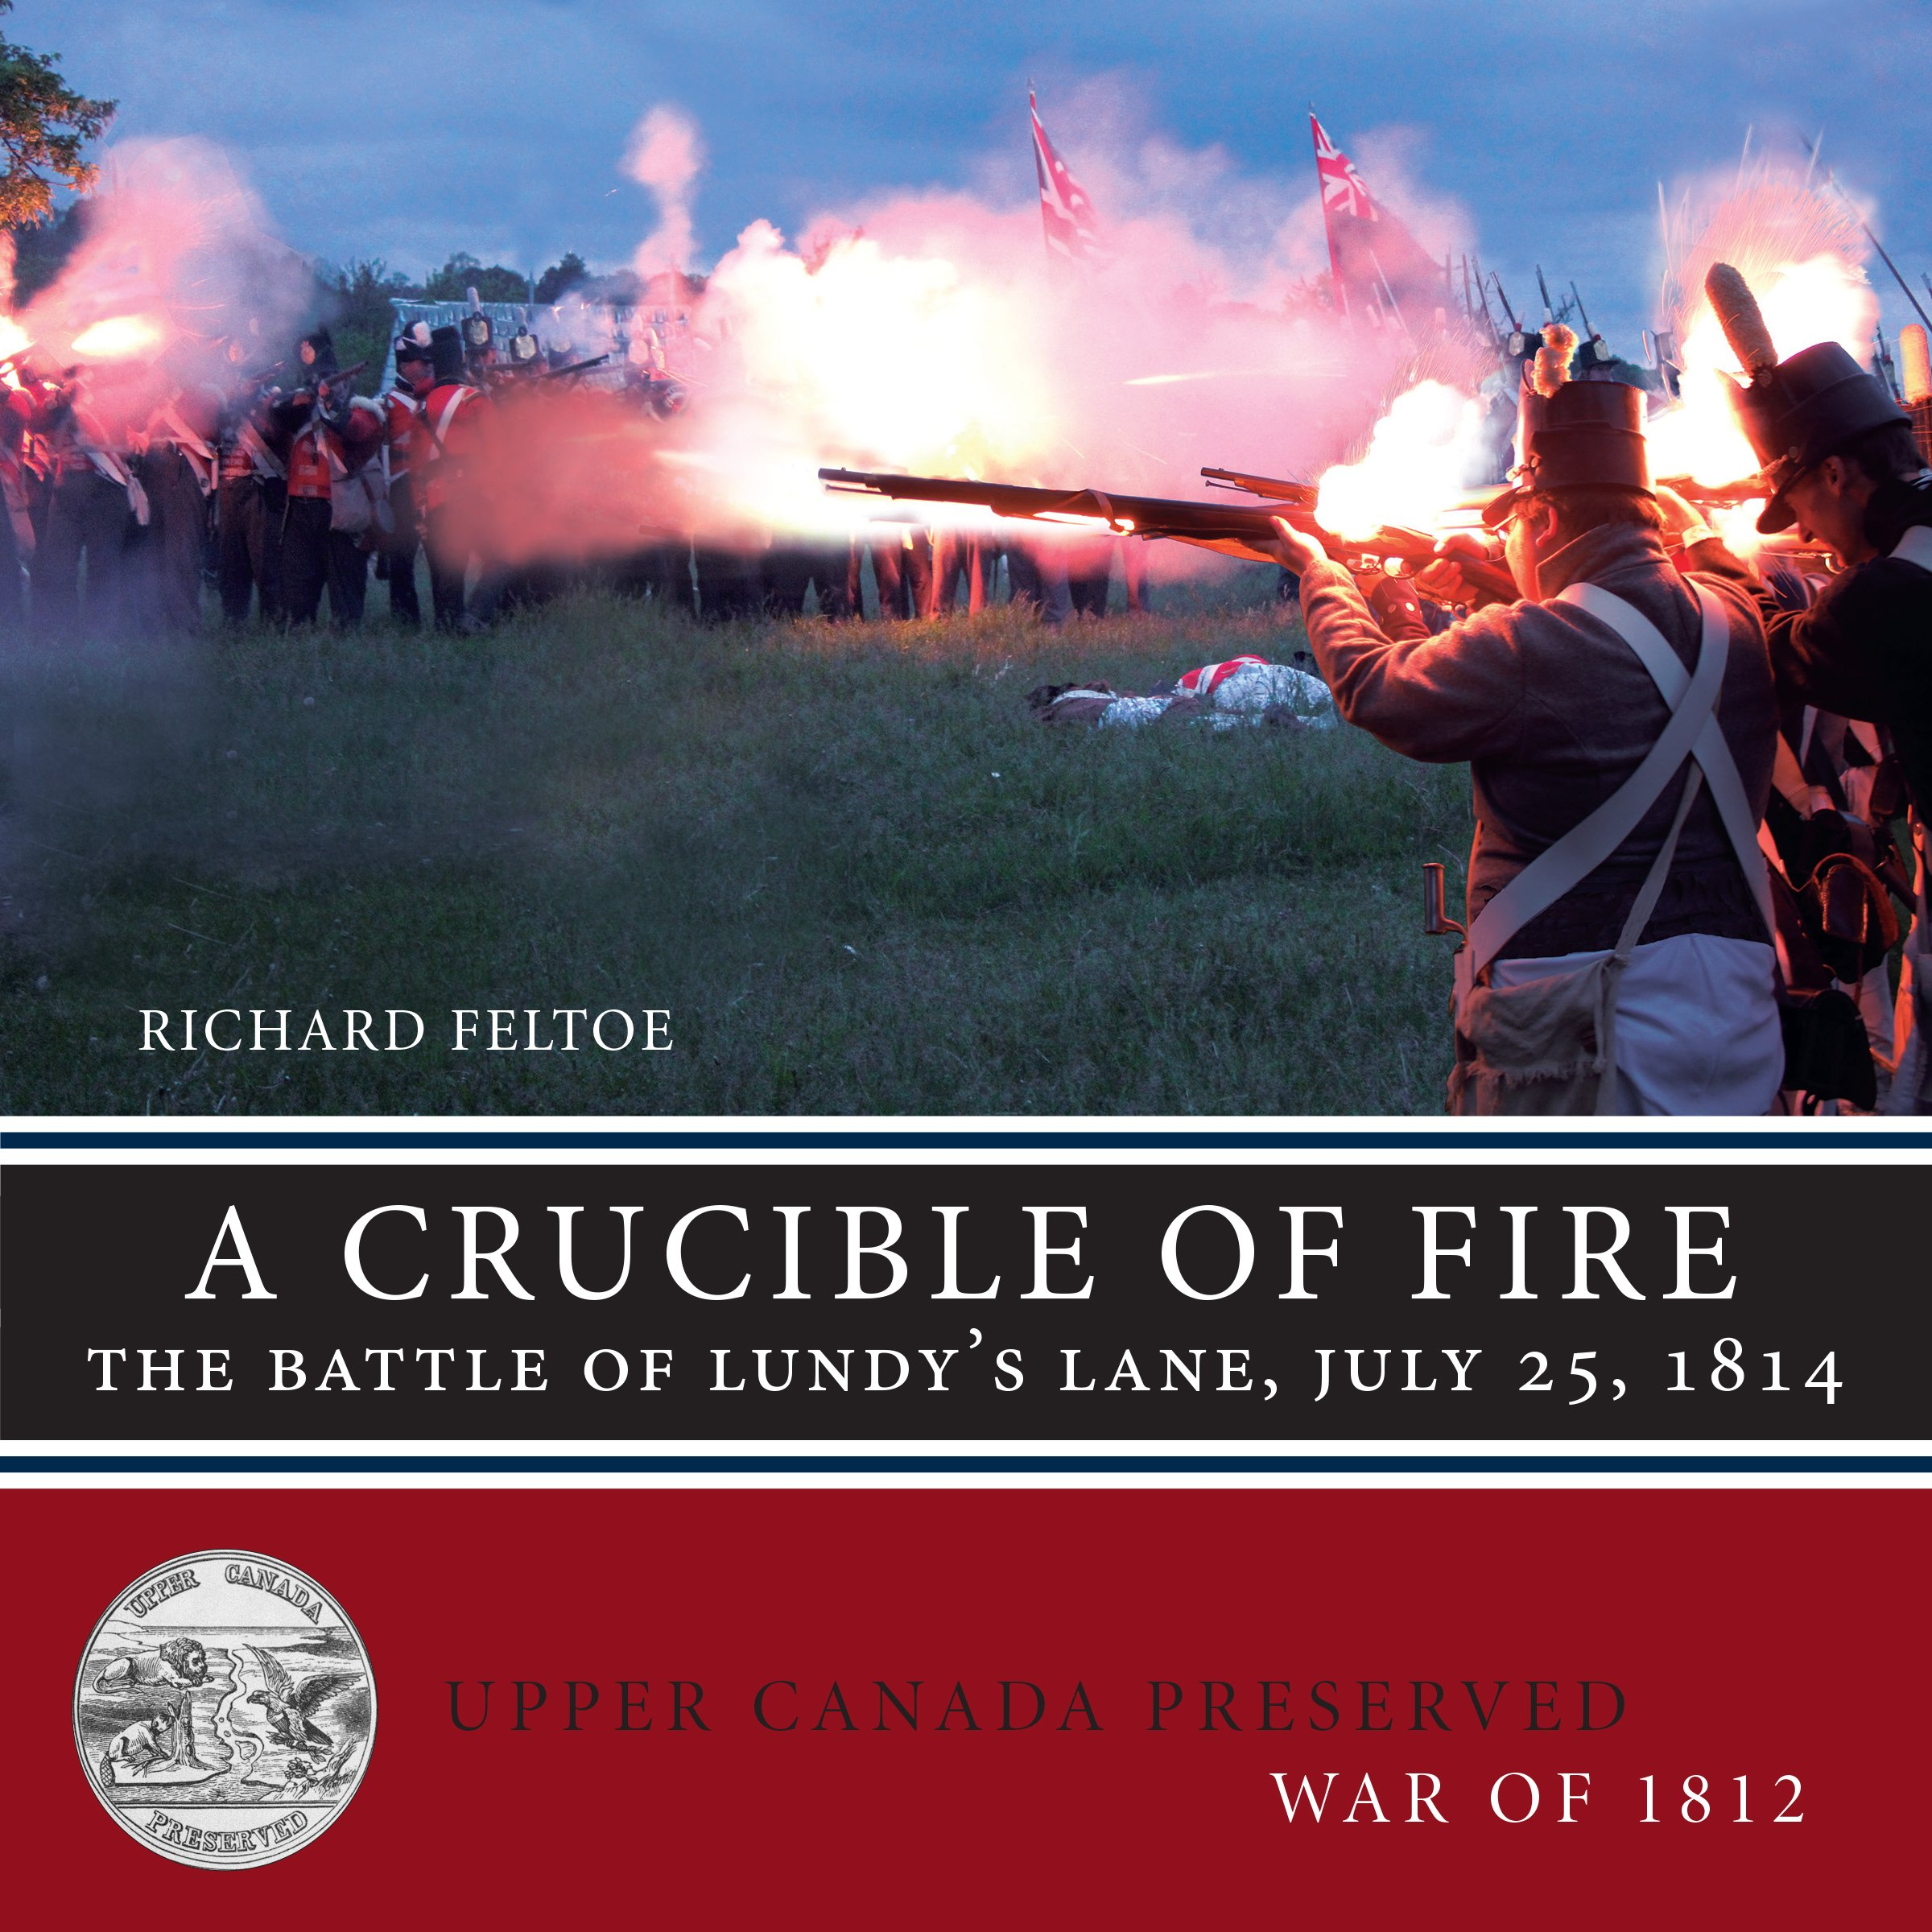 a-crucible-of-fire-the-battle-of-lundy-s-lane-july-25-1814-upper-canada-preserved-war-of-1812